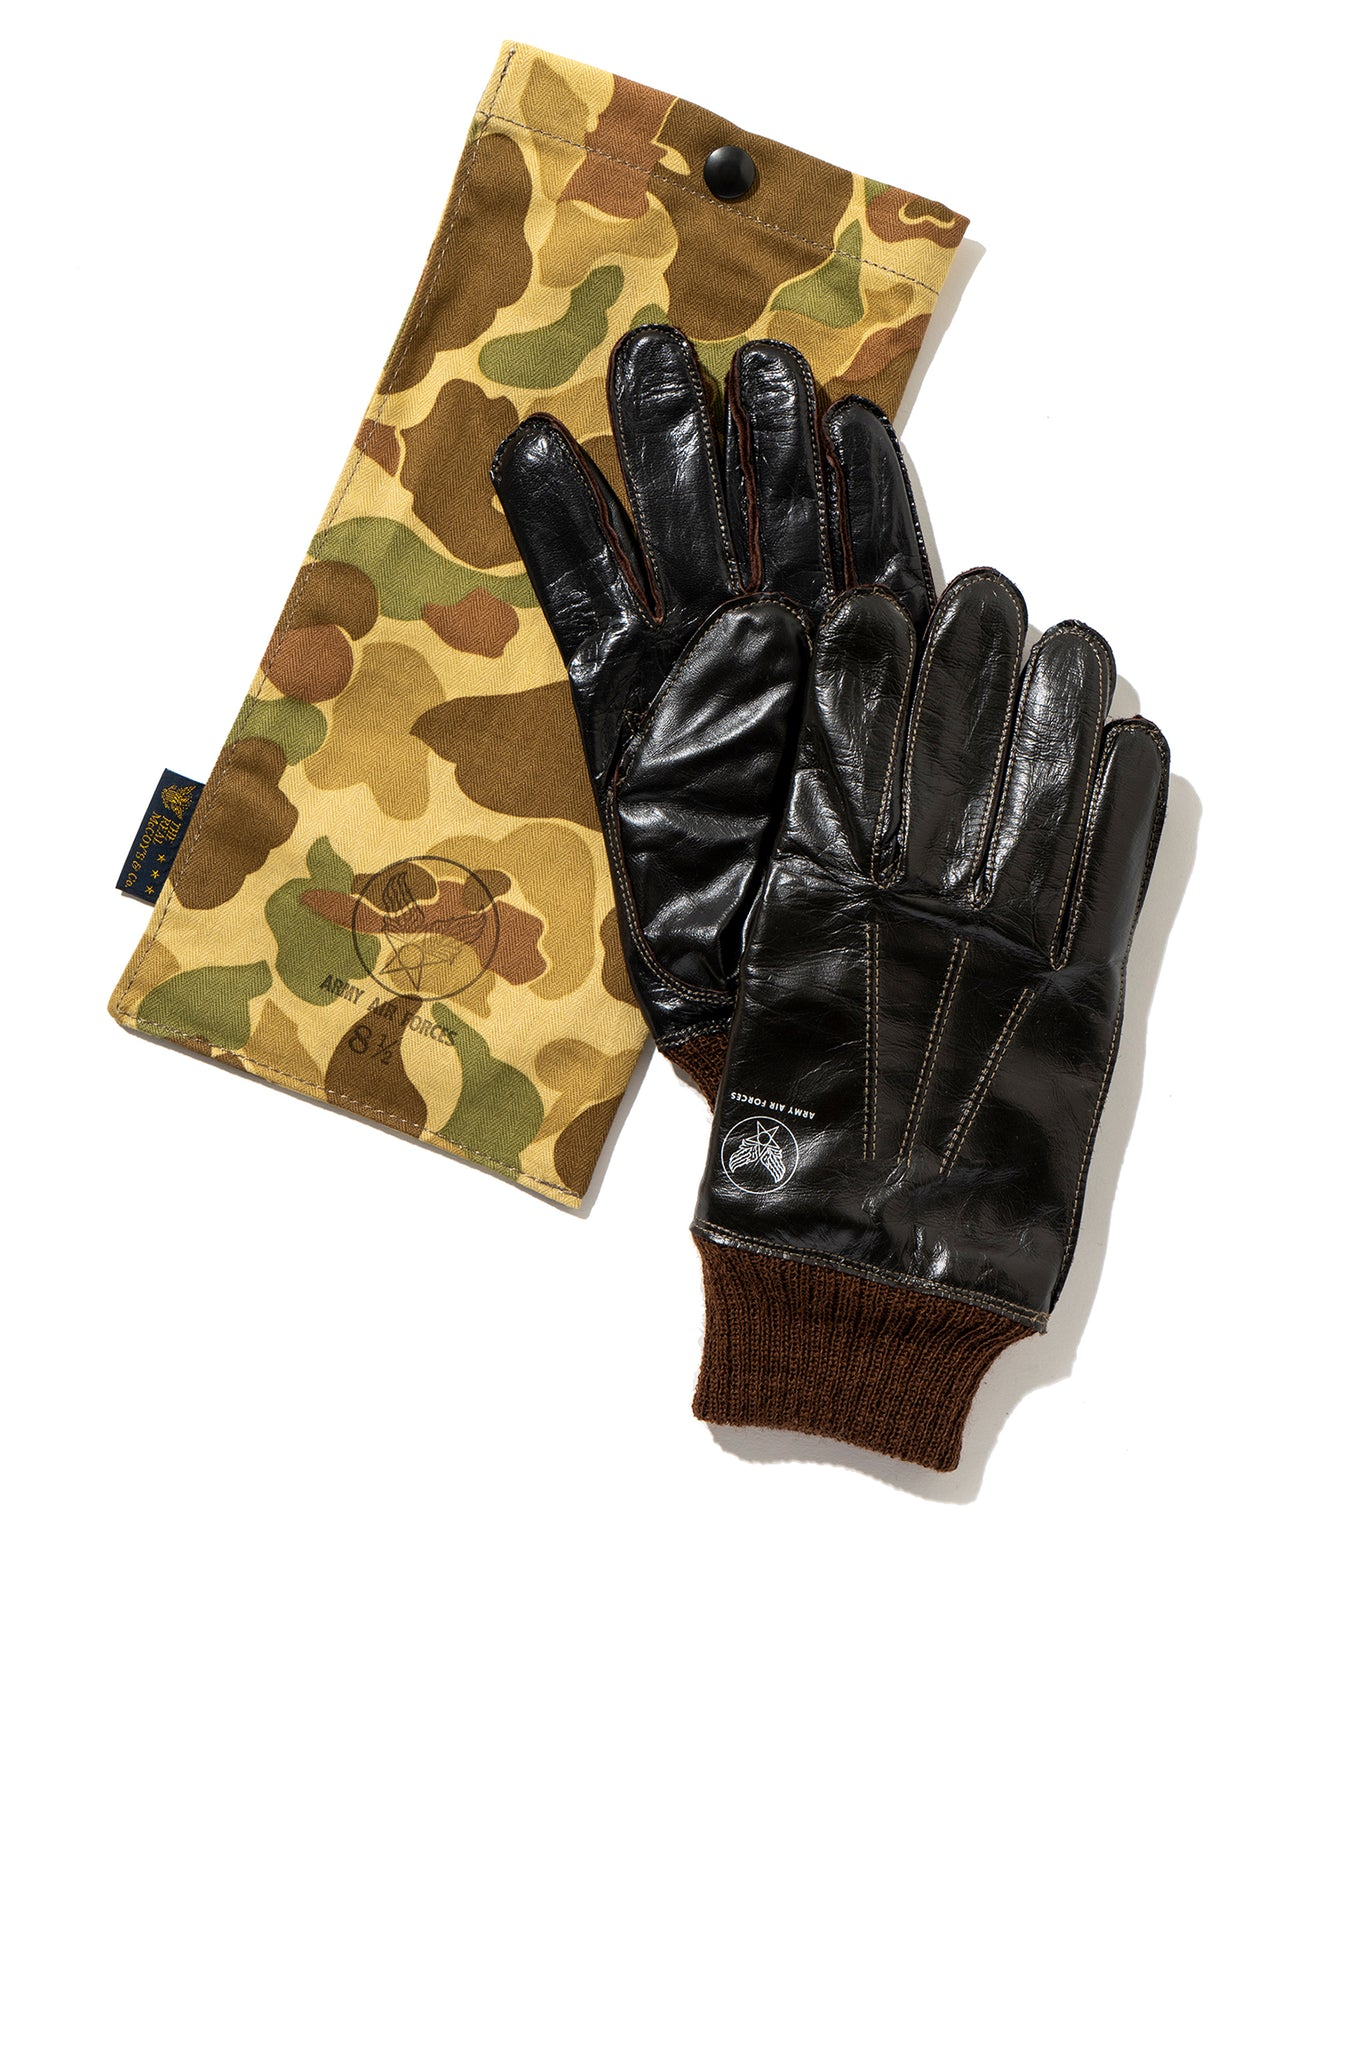 A-10 GLOVES, FLYING WINTER